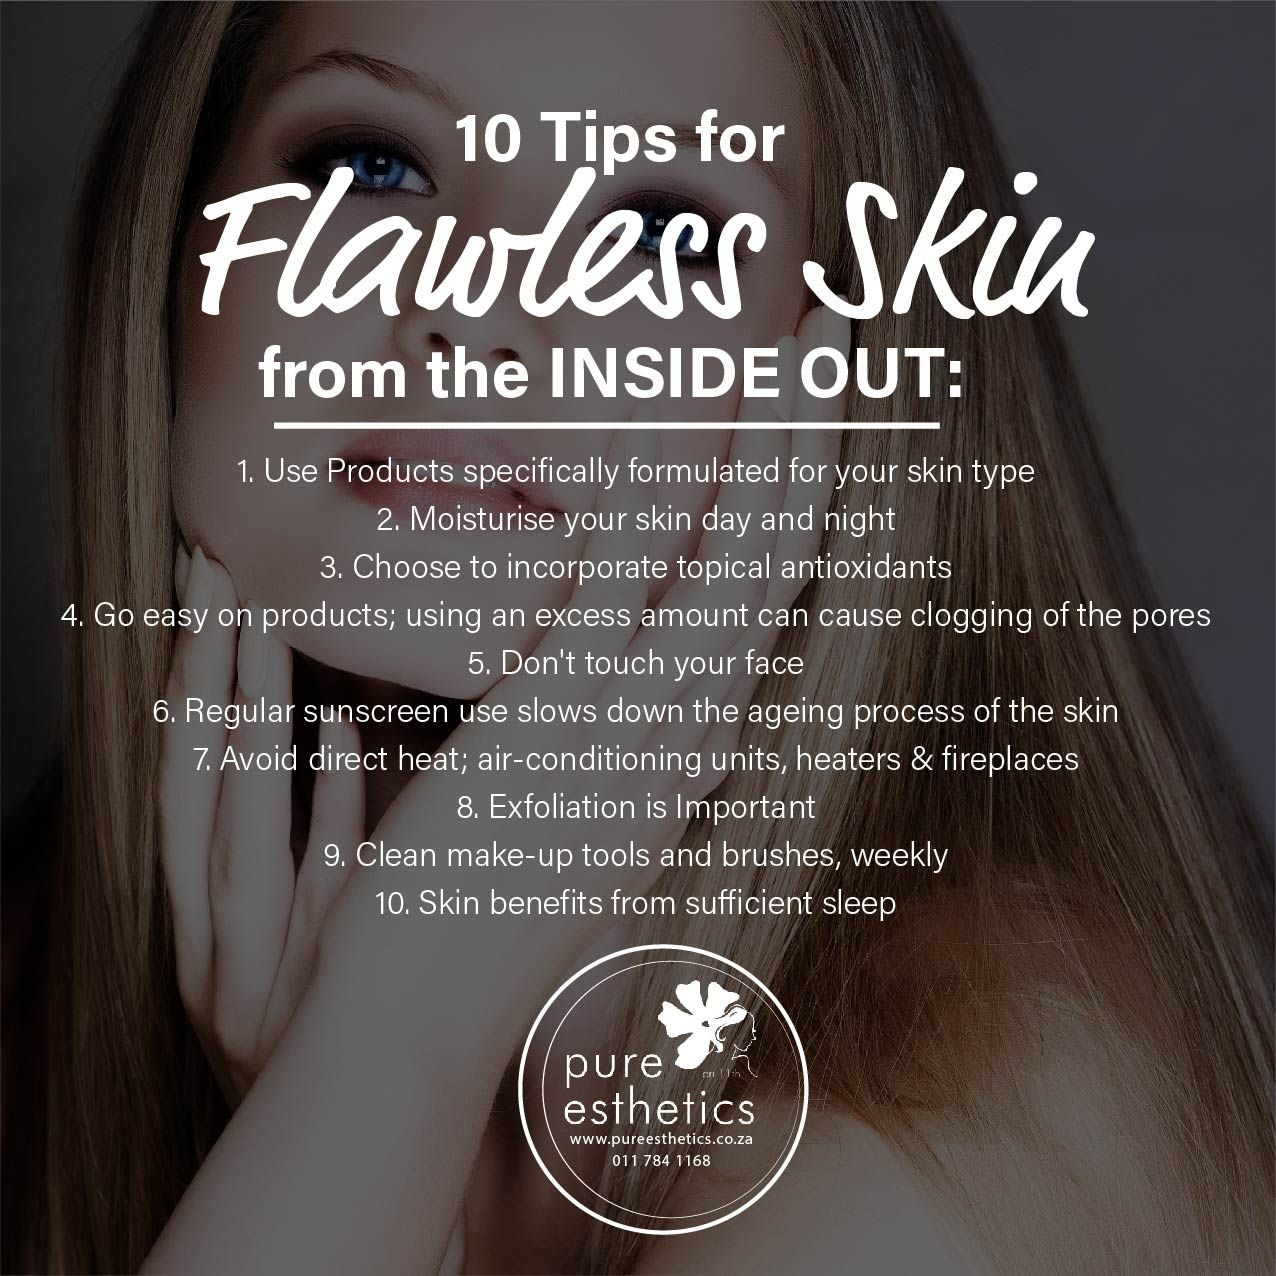 10 Tips for Flawless Skin from the INSIDE OUT 1. Use